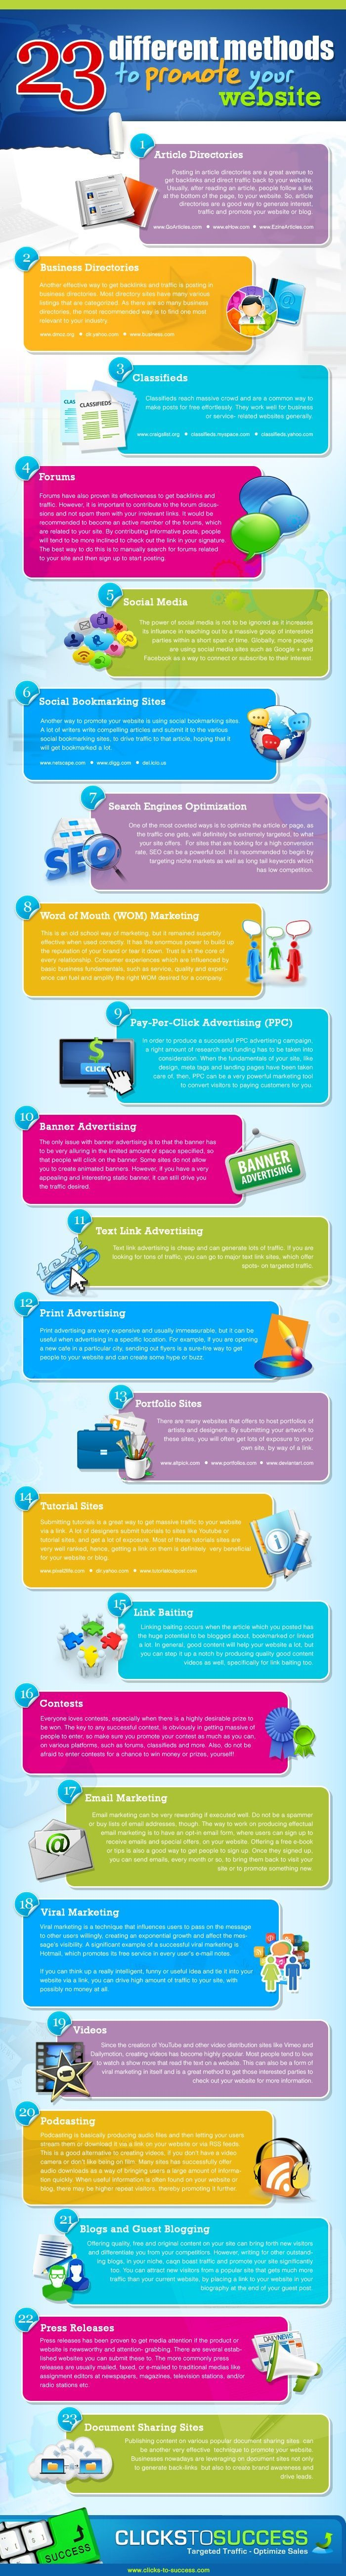 23 Methods to Promote your Website #emarketing